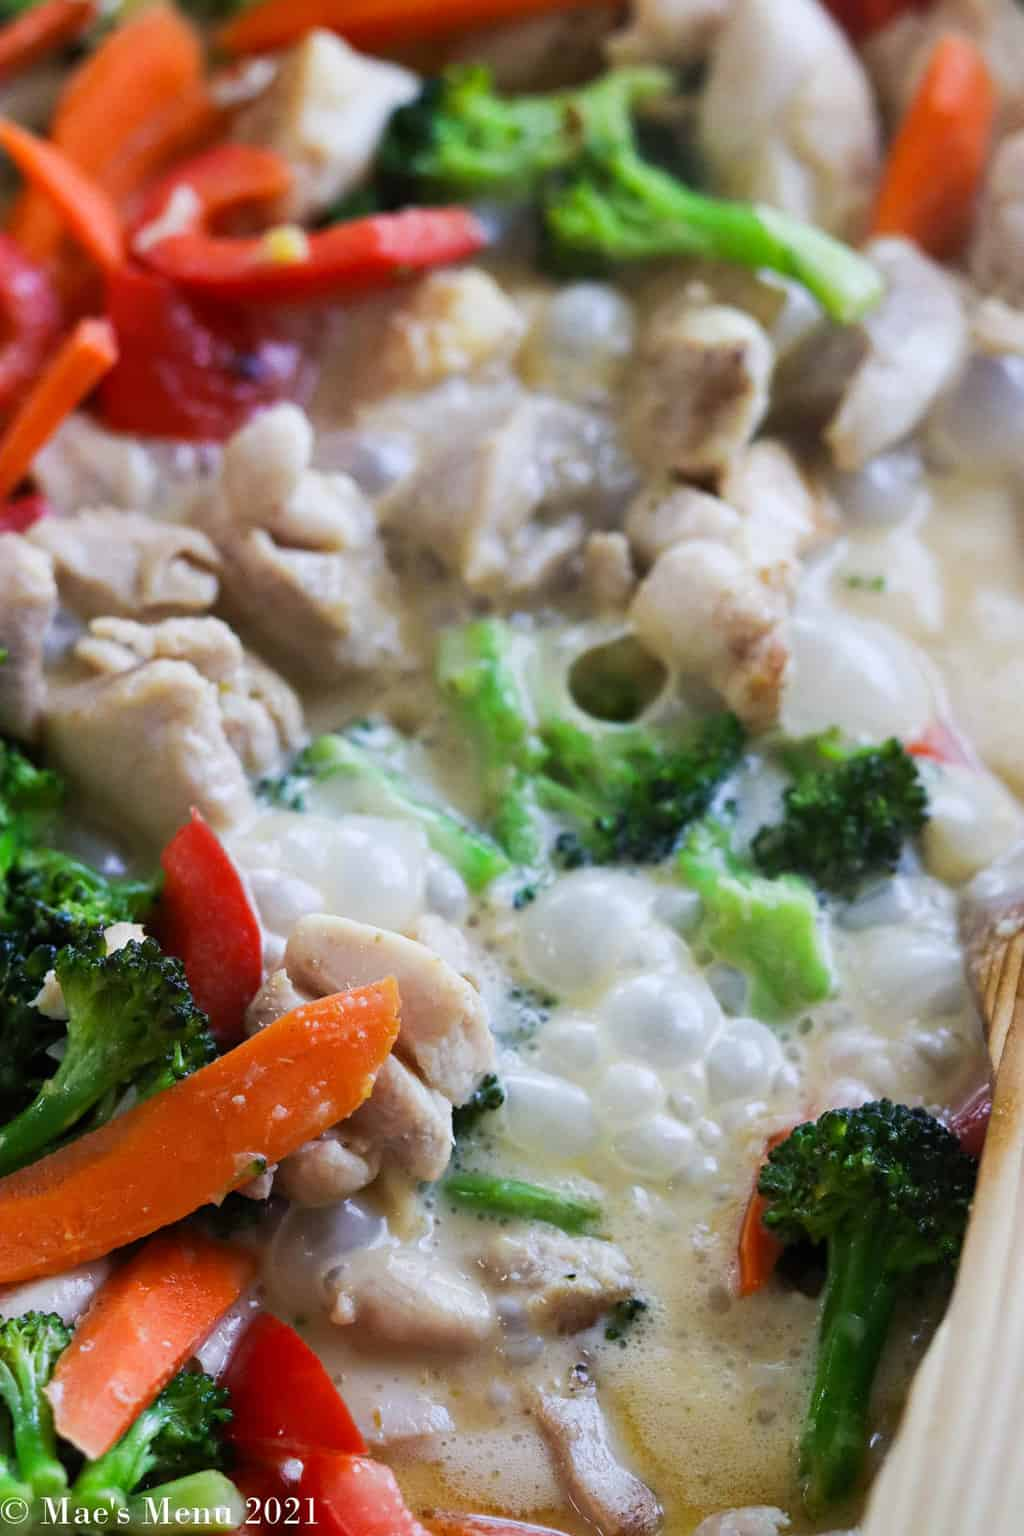 Simmering the chicken and veggies in the coconut milk